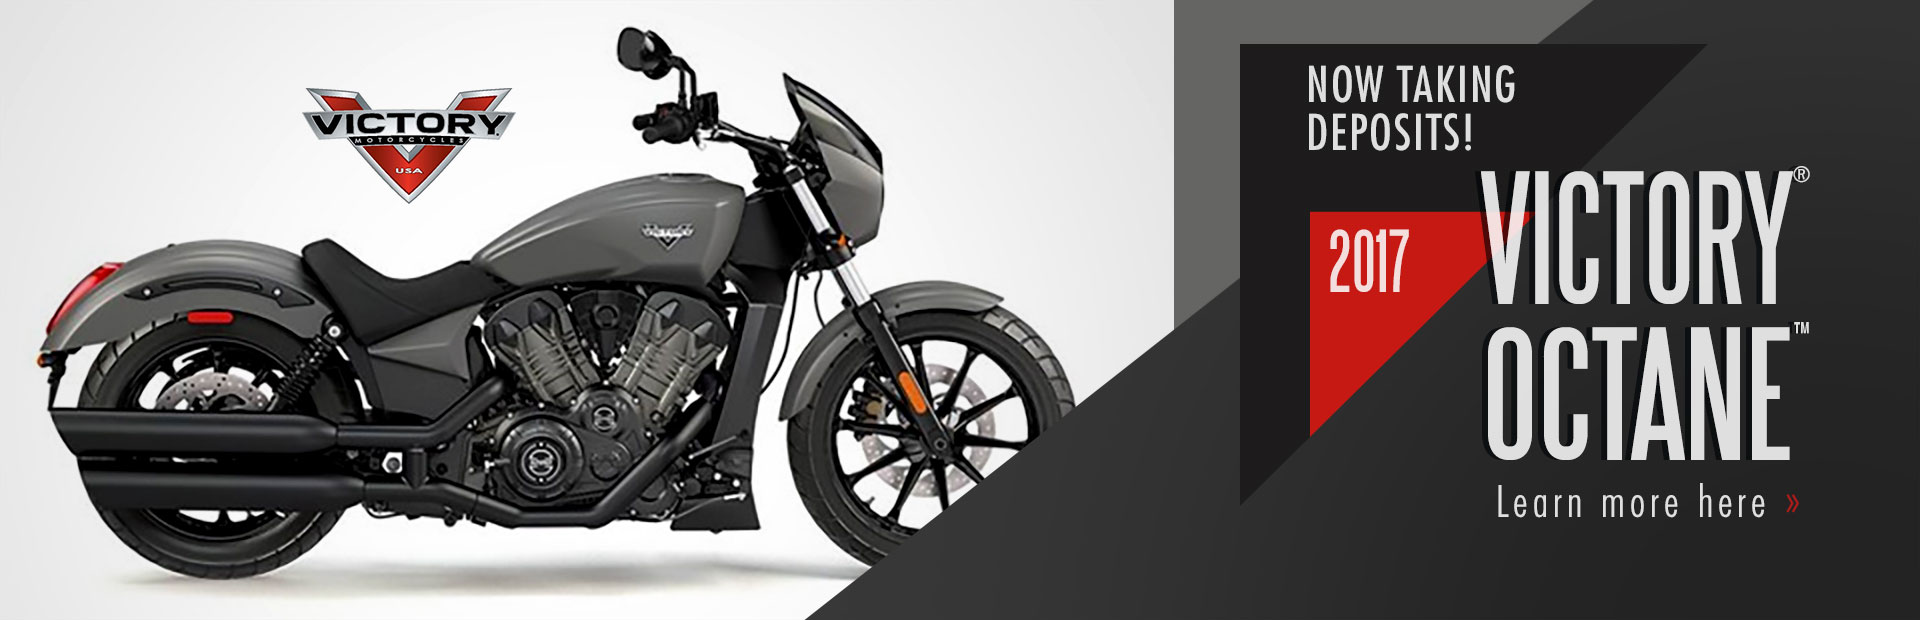 We are now taking deposits for the 2017 Victory® Octane™!